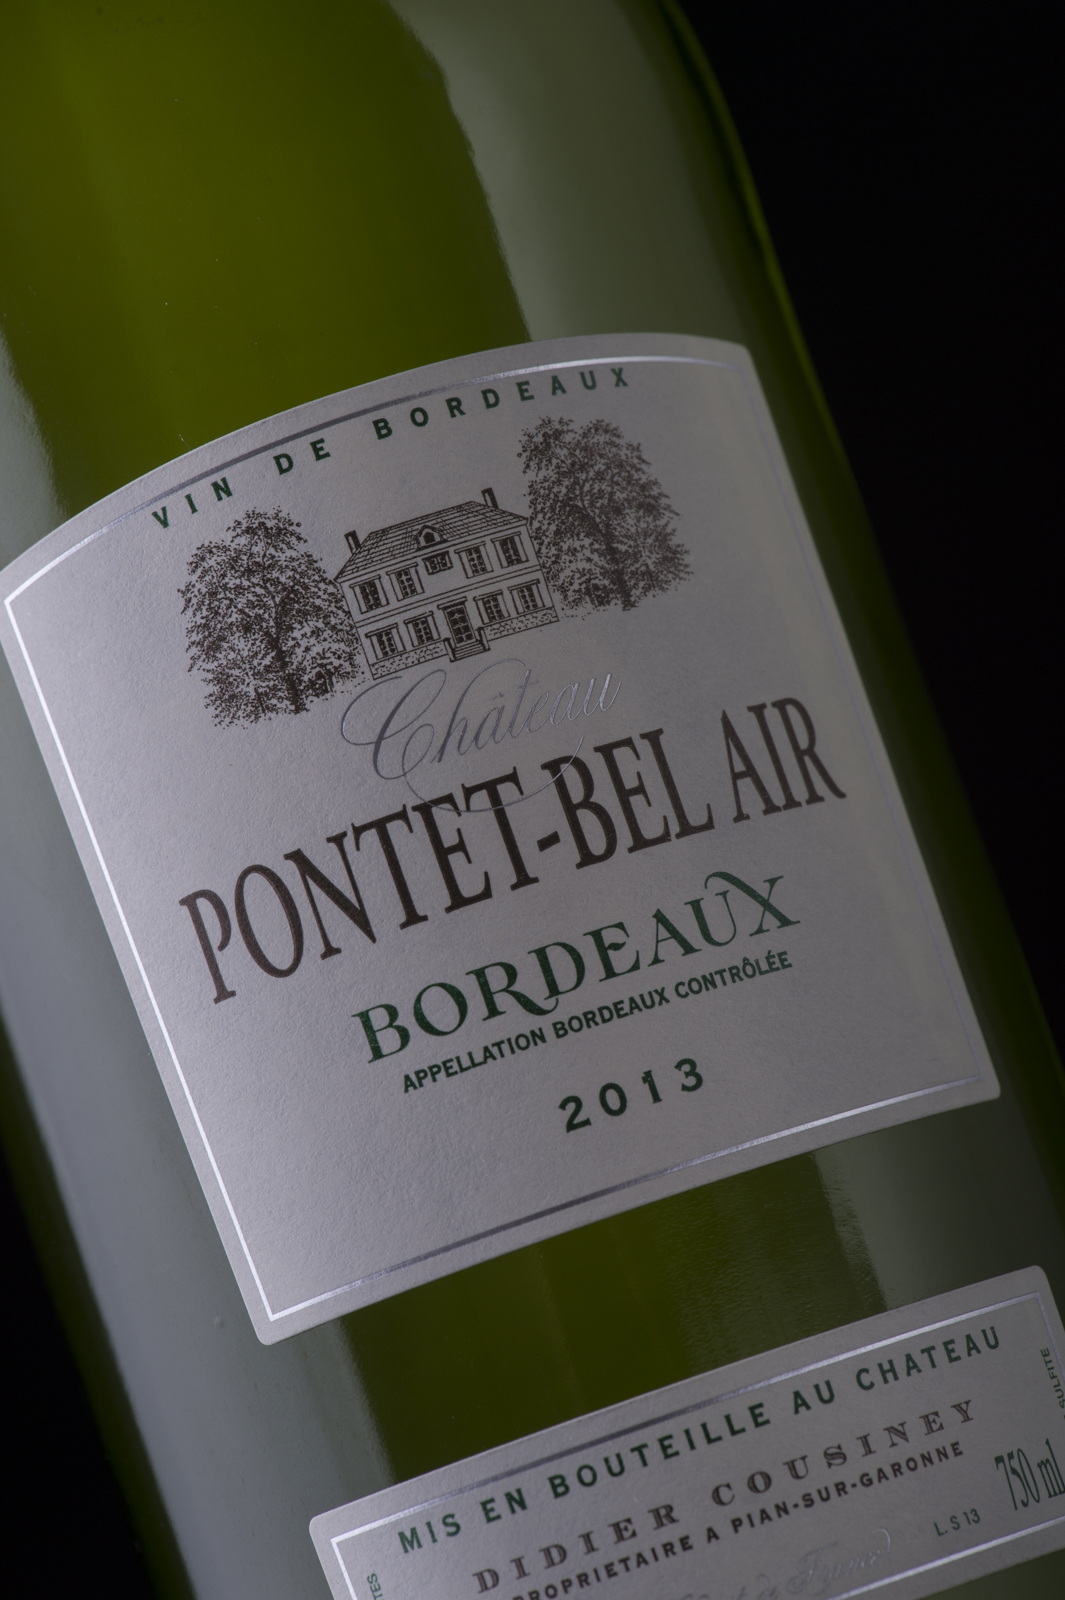 BORDEAUX SEC AOC – CHATEAU PONTET BEL AIR